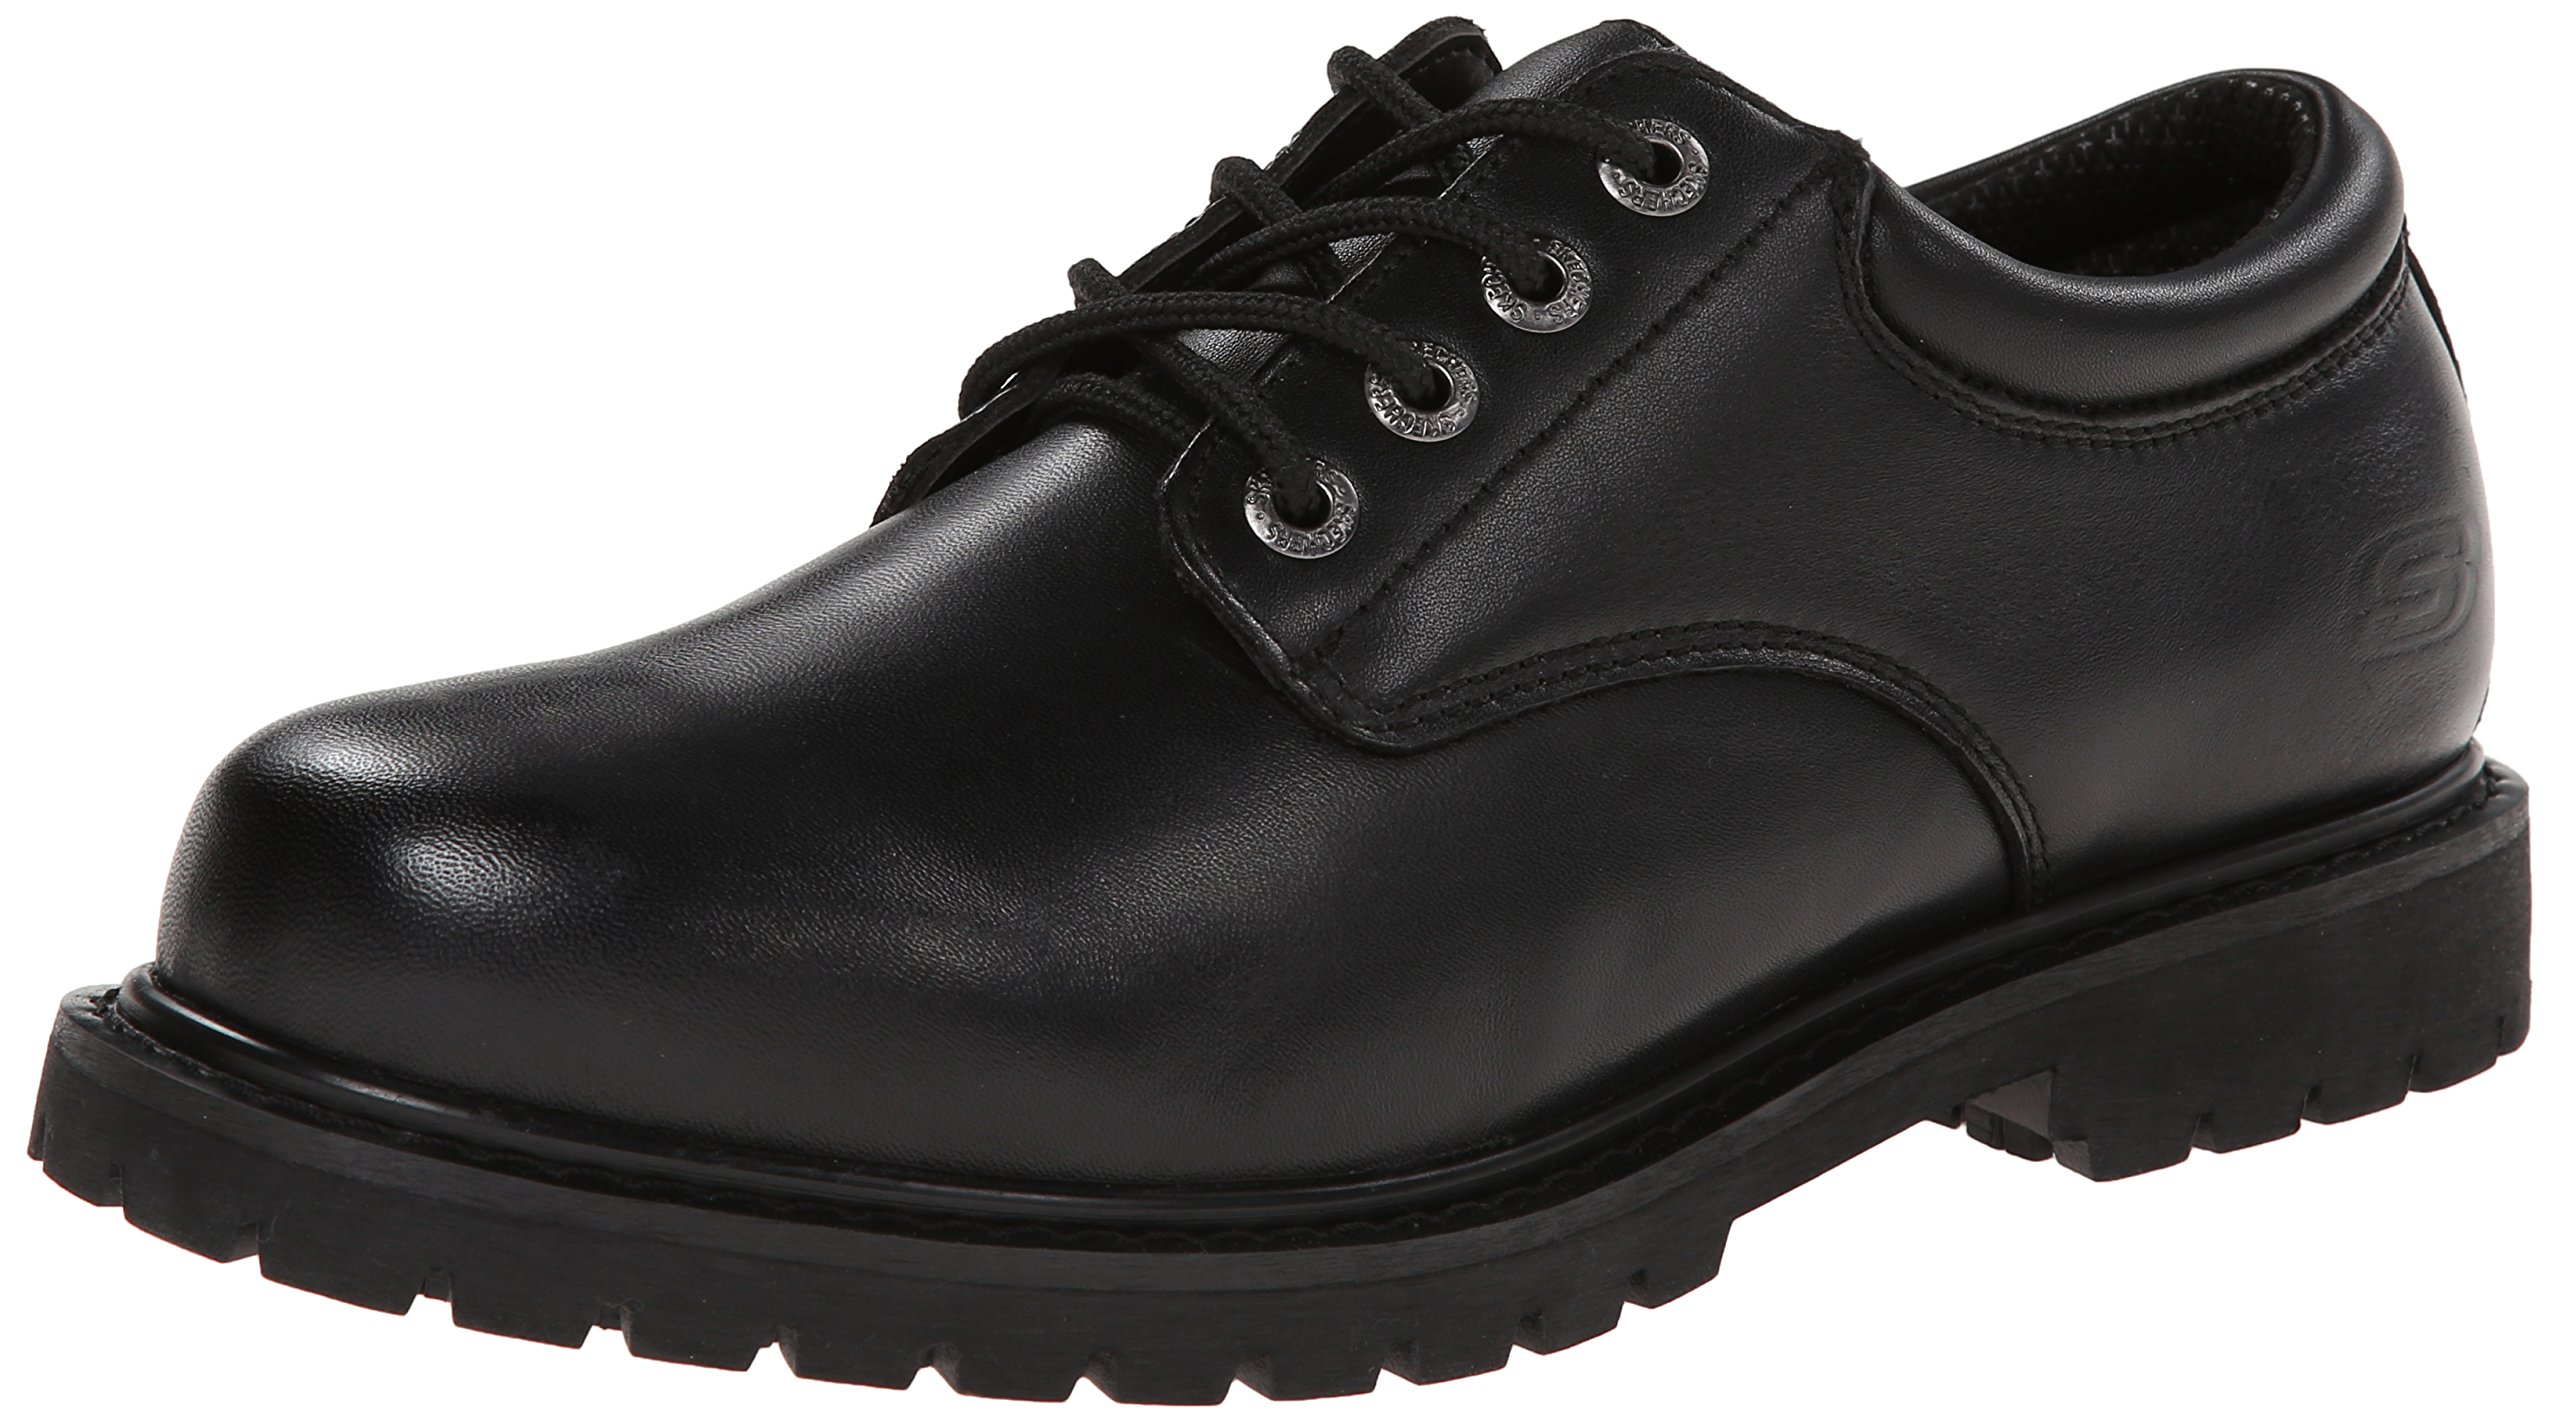 Skechers Mens Cottonwood Elks Black 10 5